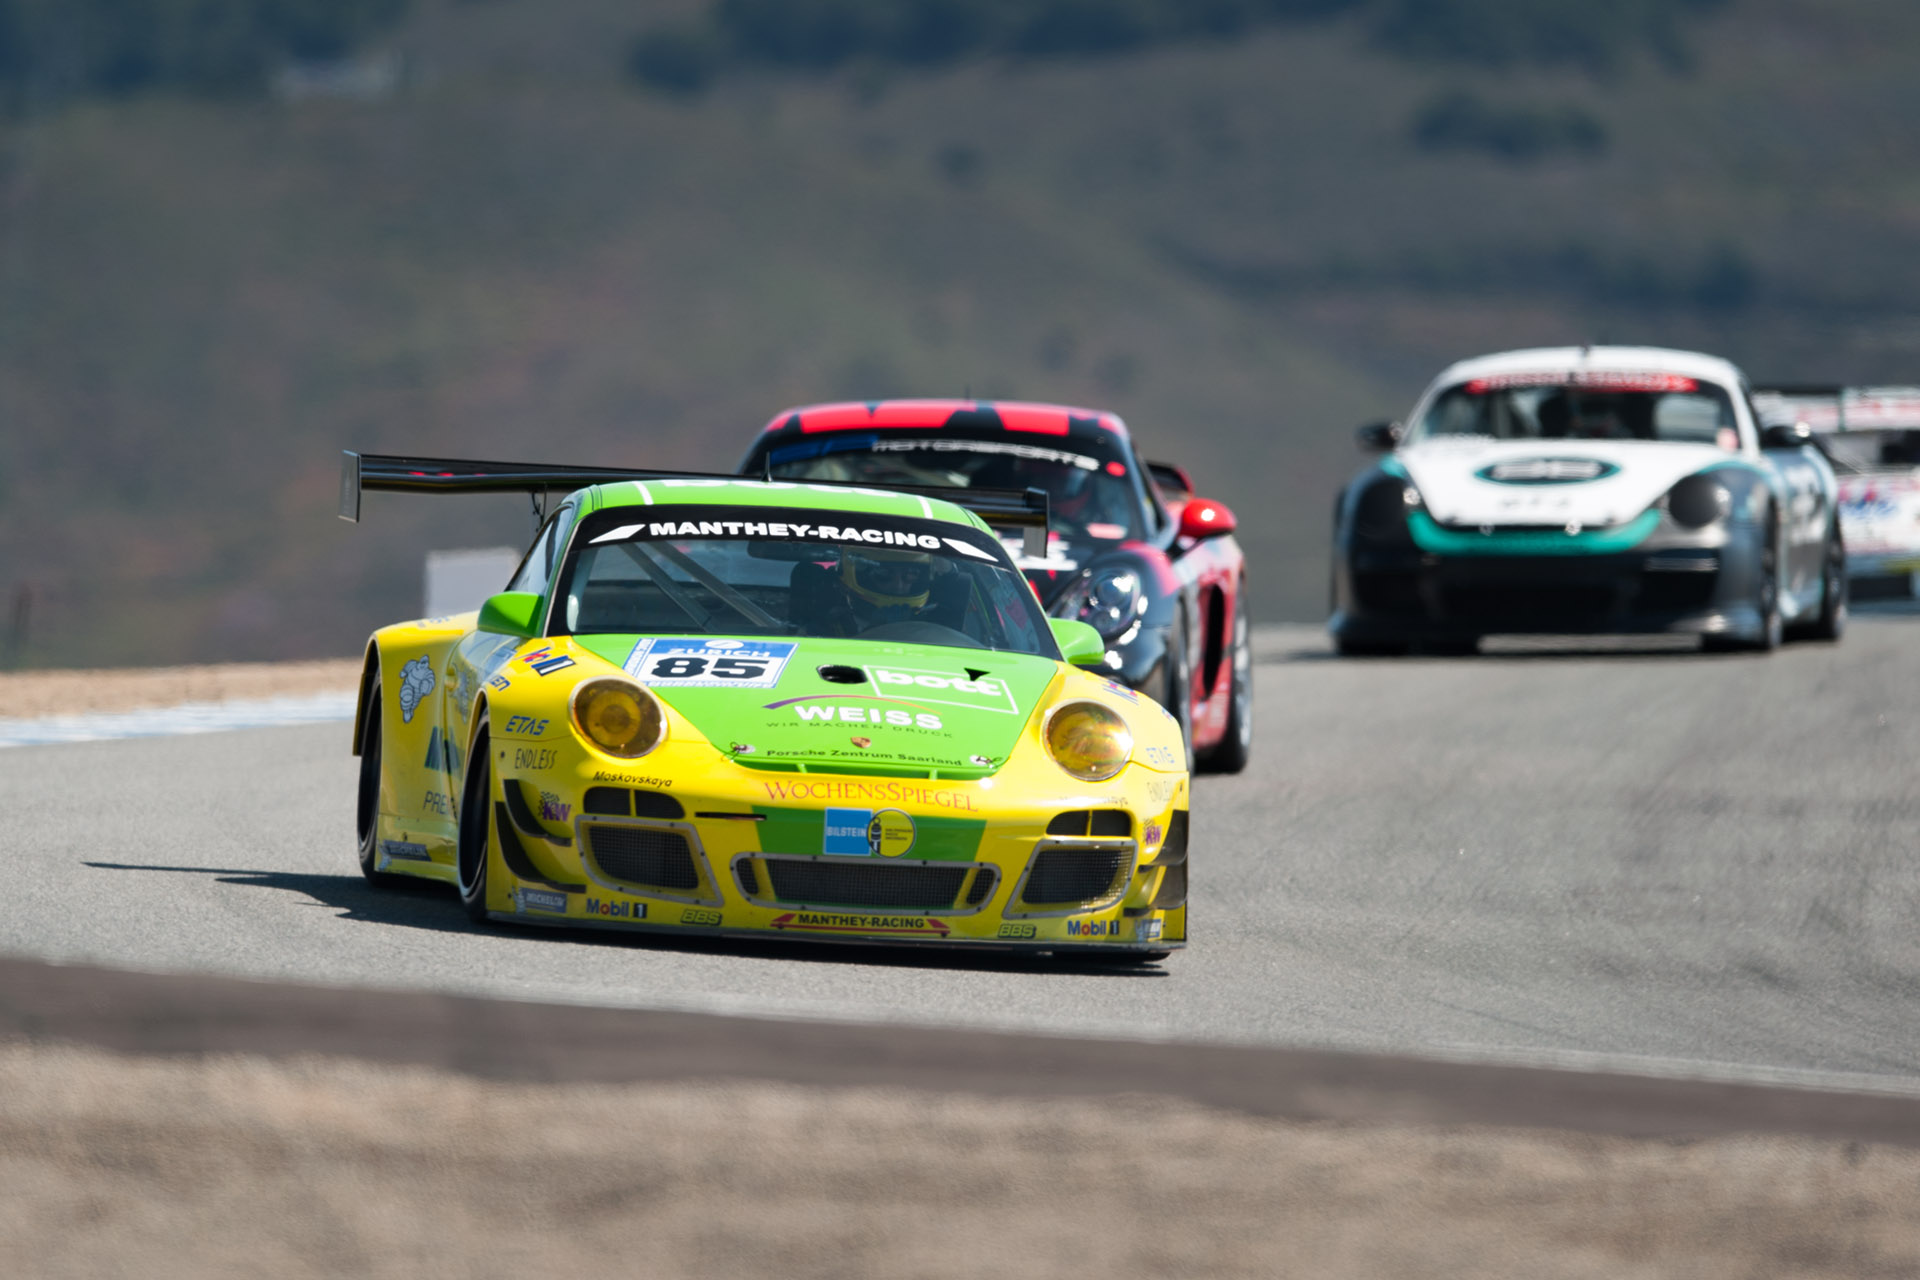 yellow and green luke Munnell motorsports photography Porsche 911 GT3 RSR, Manthey Racing Weiss 85 racing at Laguna Seca in California